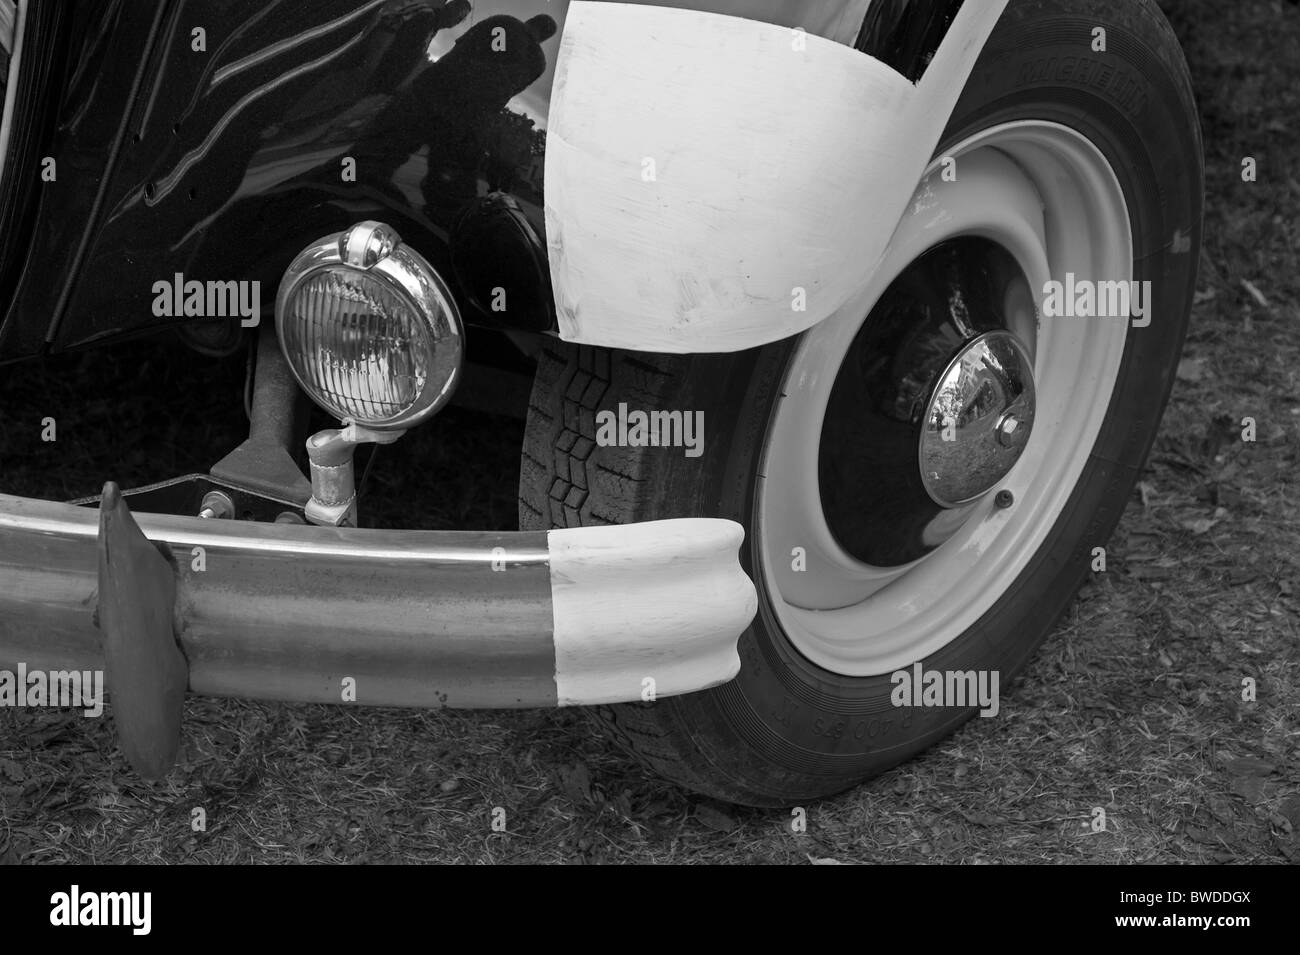 Live Show Black and White Stock Photos & Images - Alamy